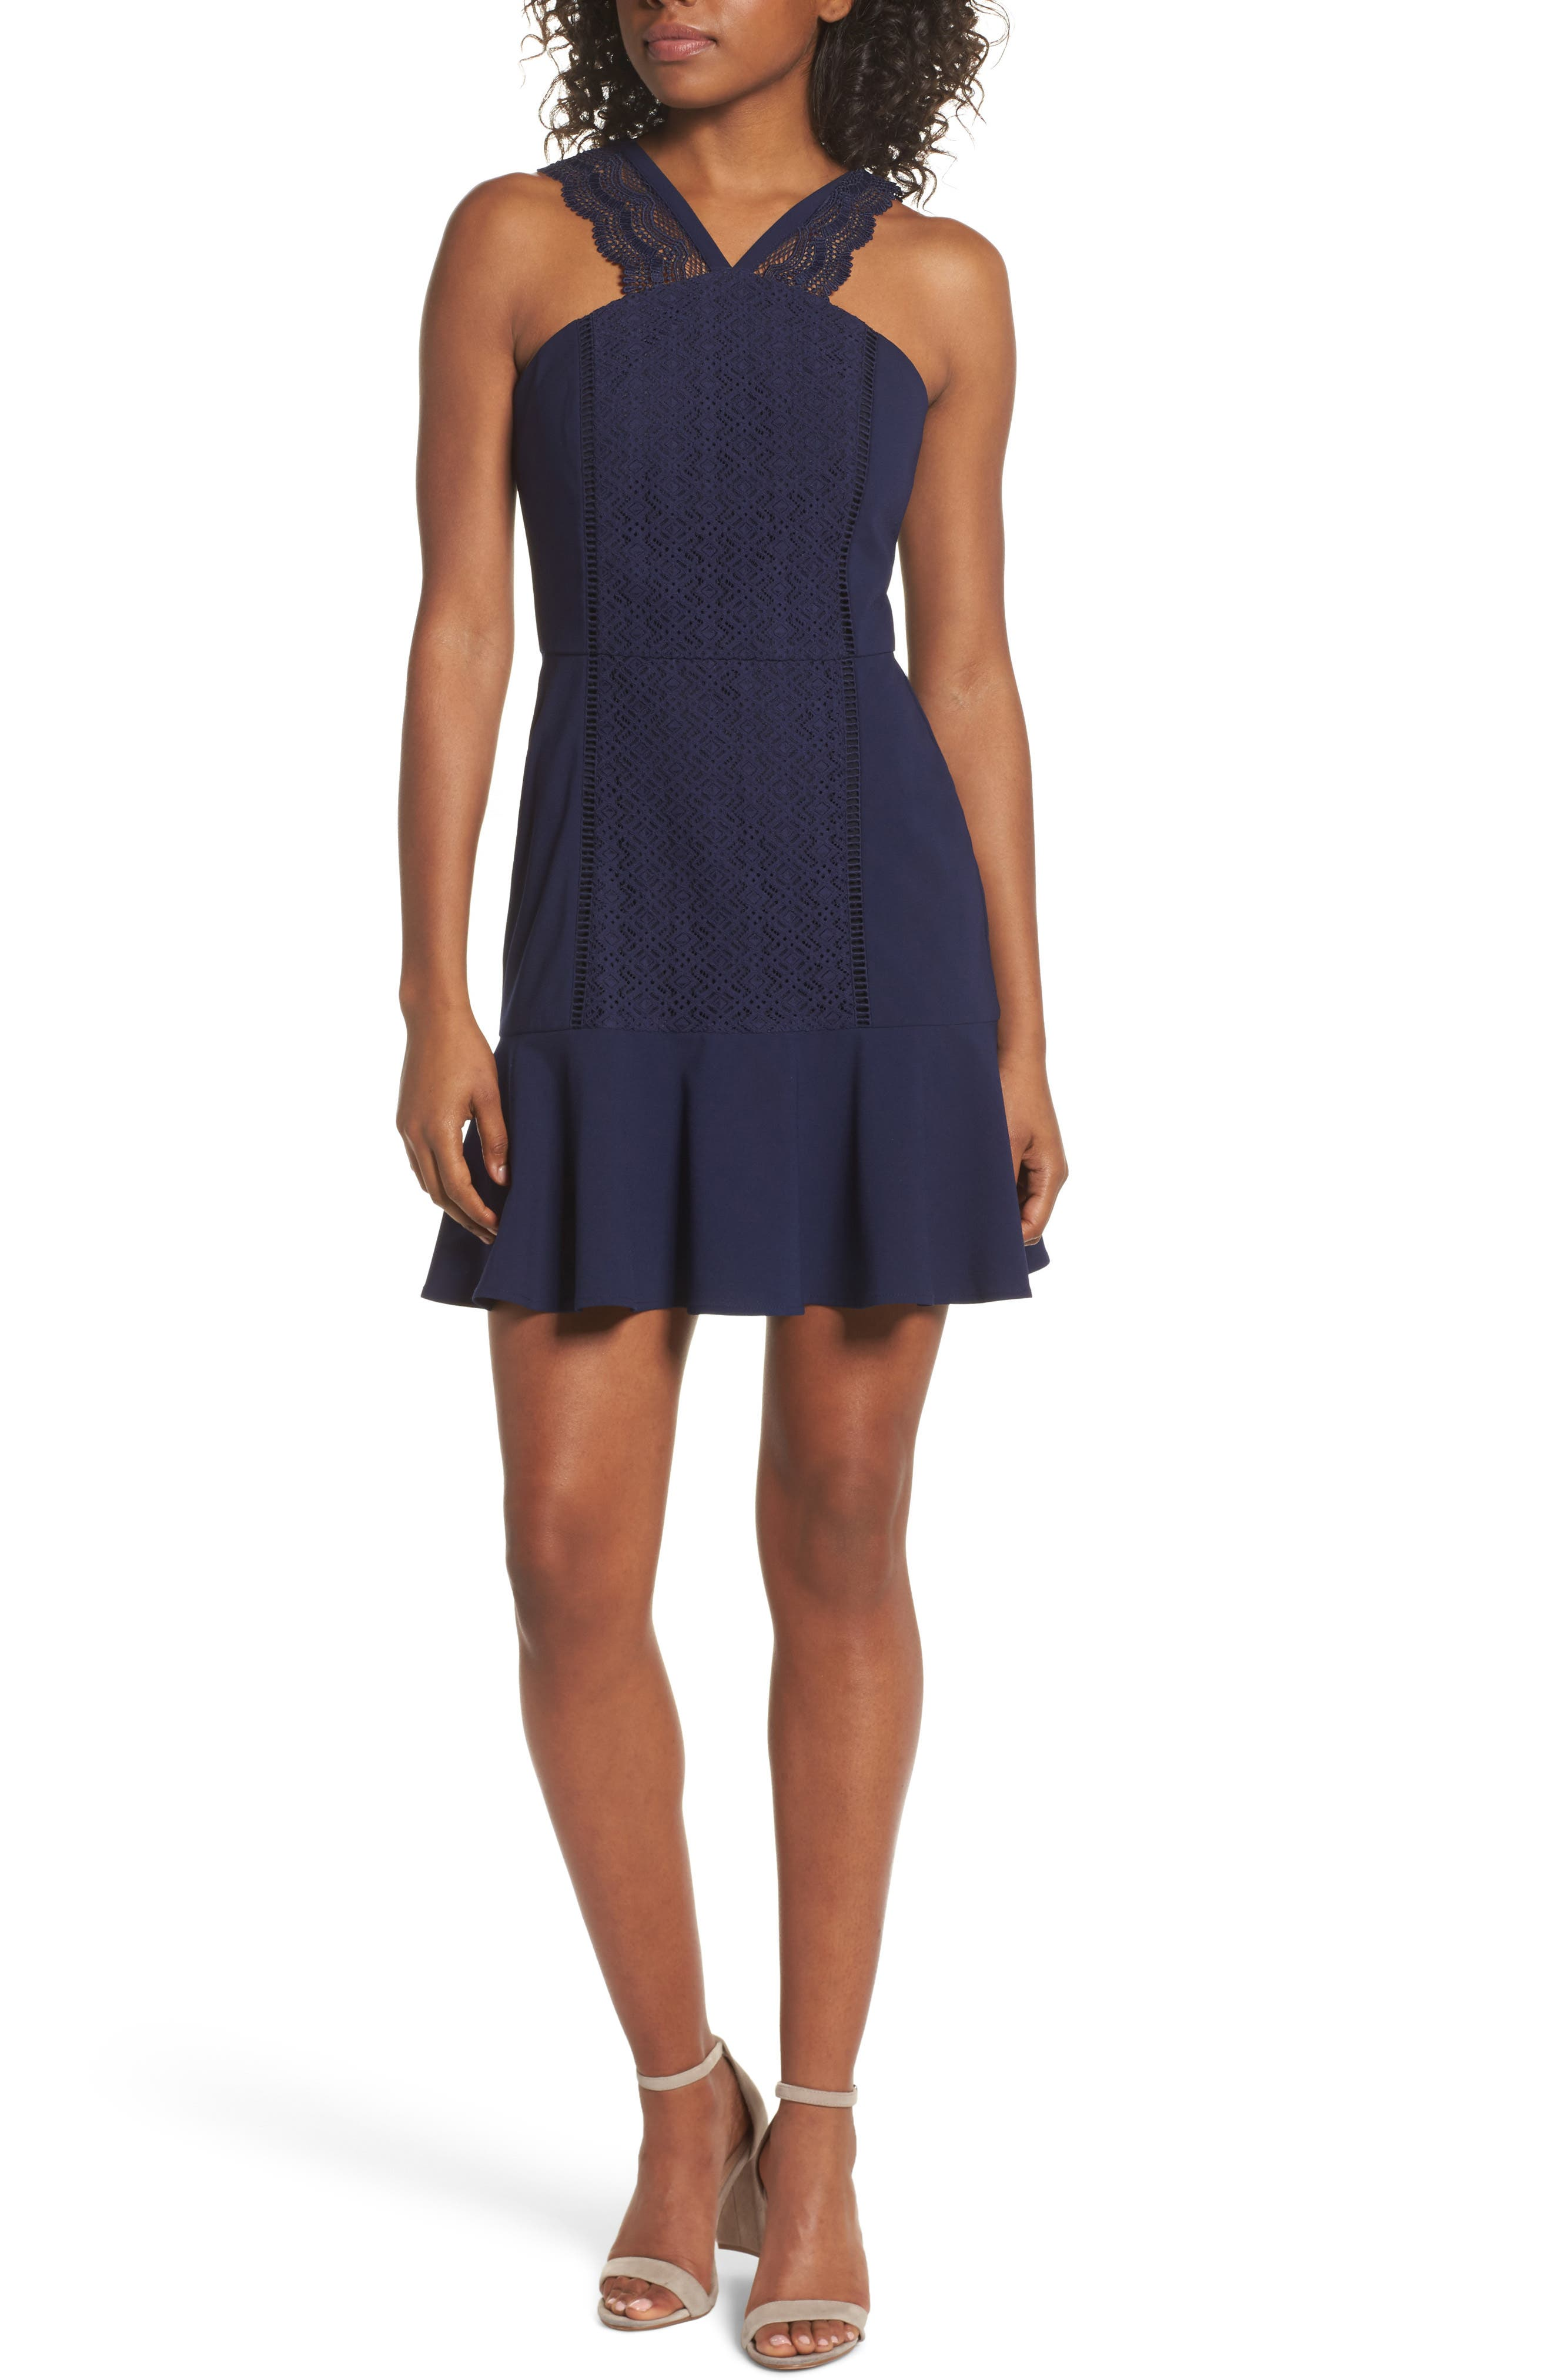 Alternate Image 1 Selected - Greylin Mila Lace Fit & Flare Dress